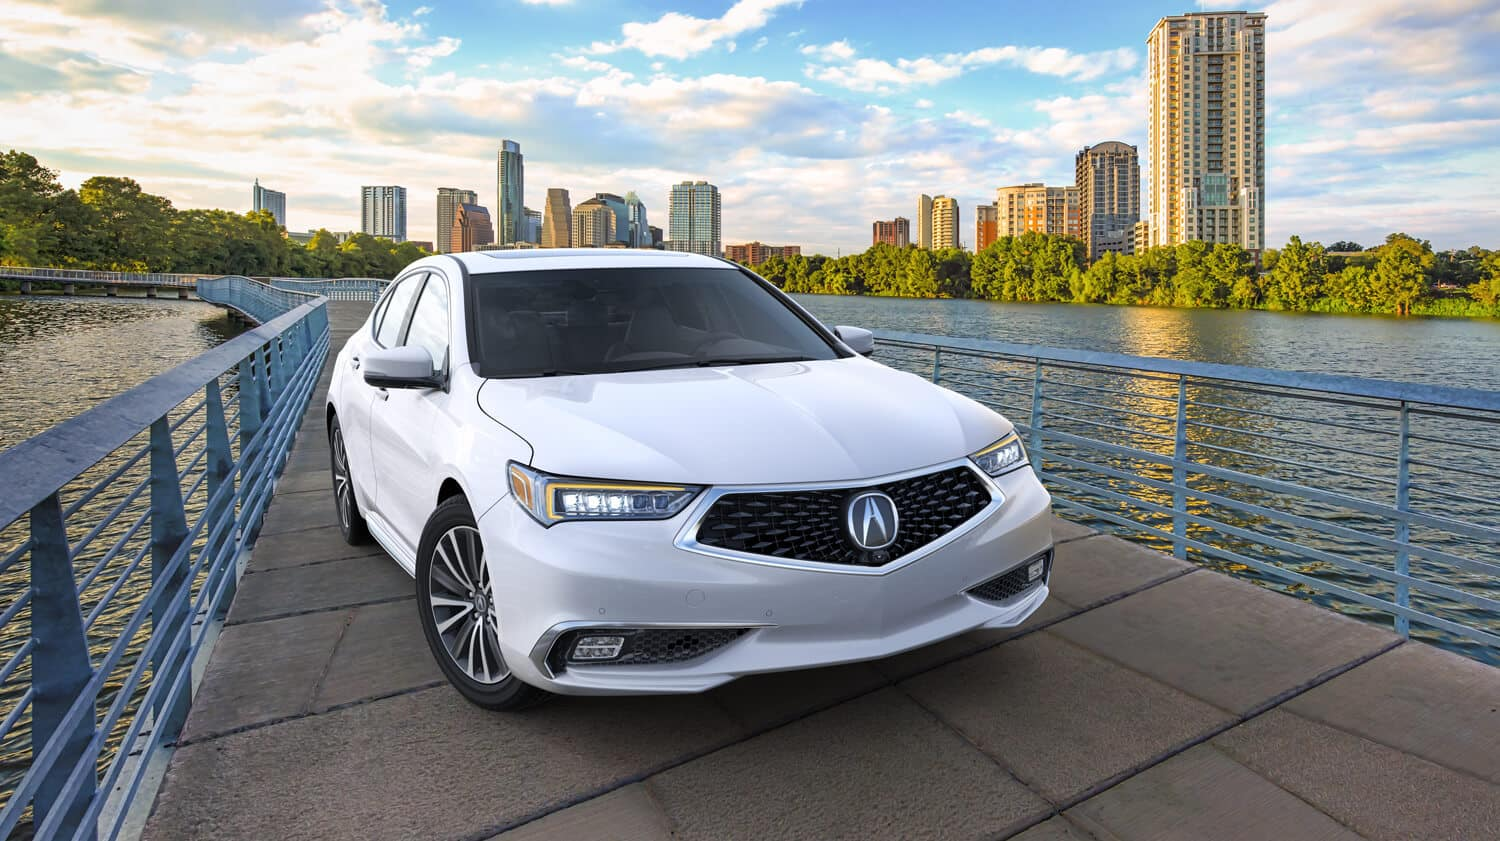 2019 Acura TLX Exterior City Waterfront Passenger Side